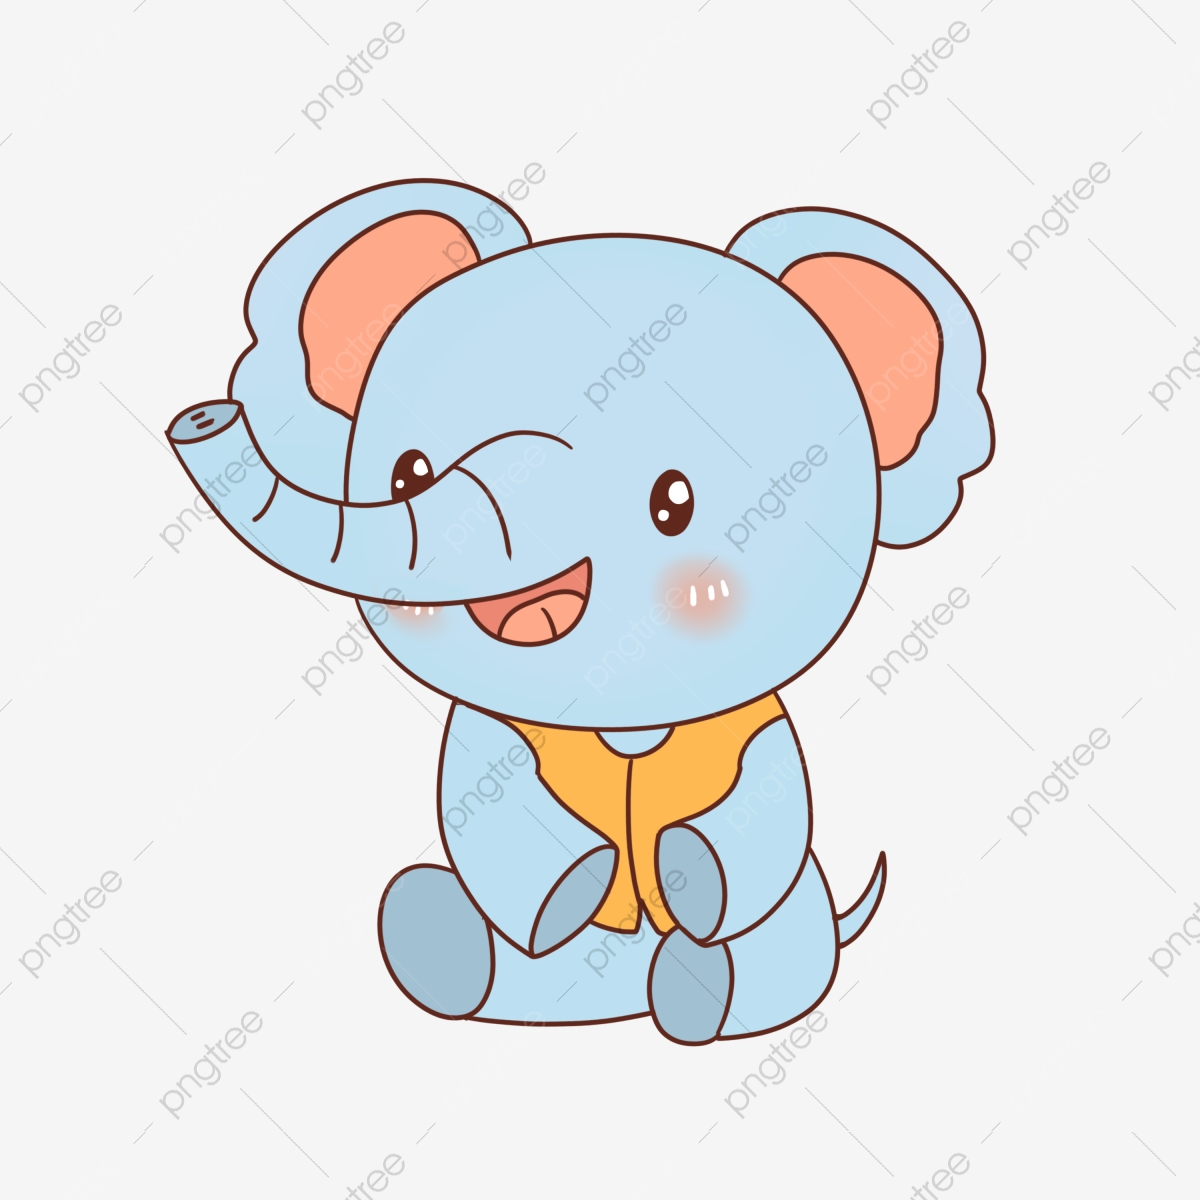 Cute Sky Blue Cartoon Animal Elephant Cute Sky Blue Cartoon Png Transparent Clipart Image And Psd File For Free Download All images are transparent background and unlimited download. https pngtree com freepng cute sky blue cartoon animal elephant 4449319 html